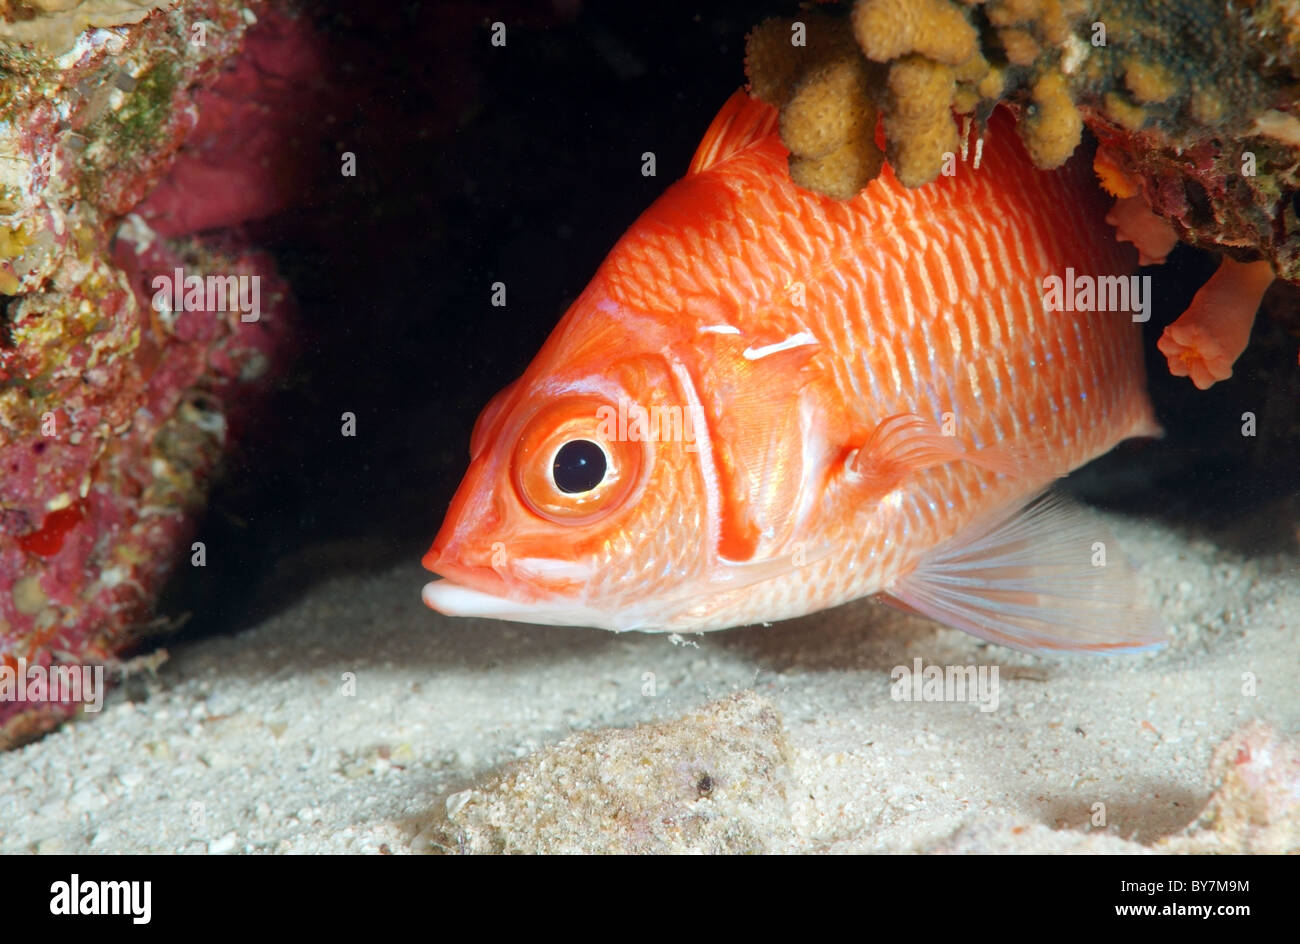 Long-jawed squirrelfish, Sabre squirrelfish, giant squirrelfish or spiny squirrelfish (Sargocentron spiniferum) - Stock Image